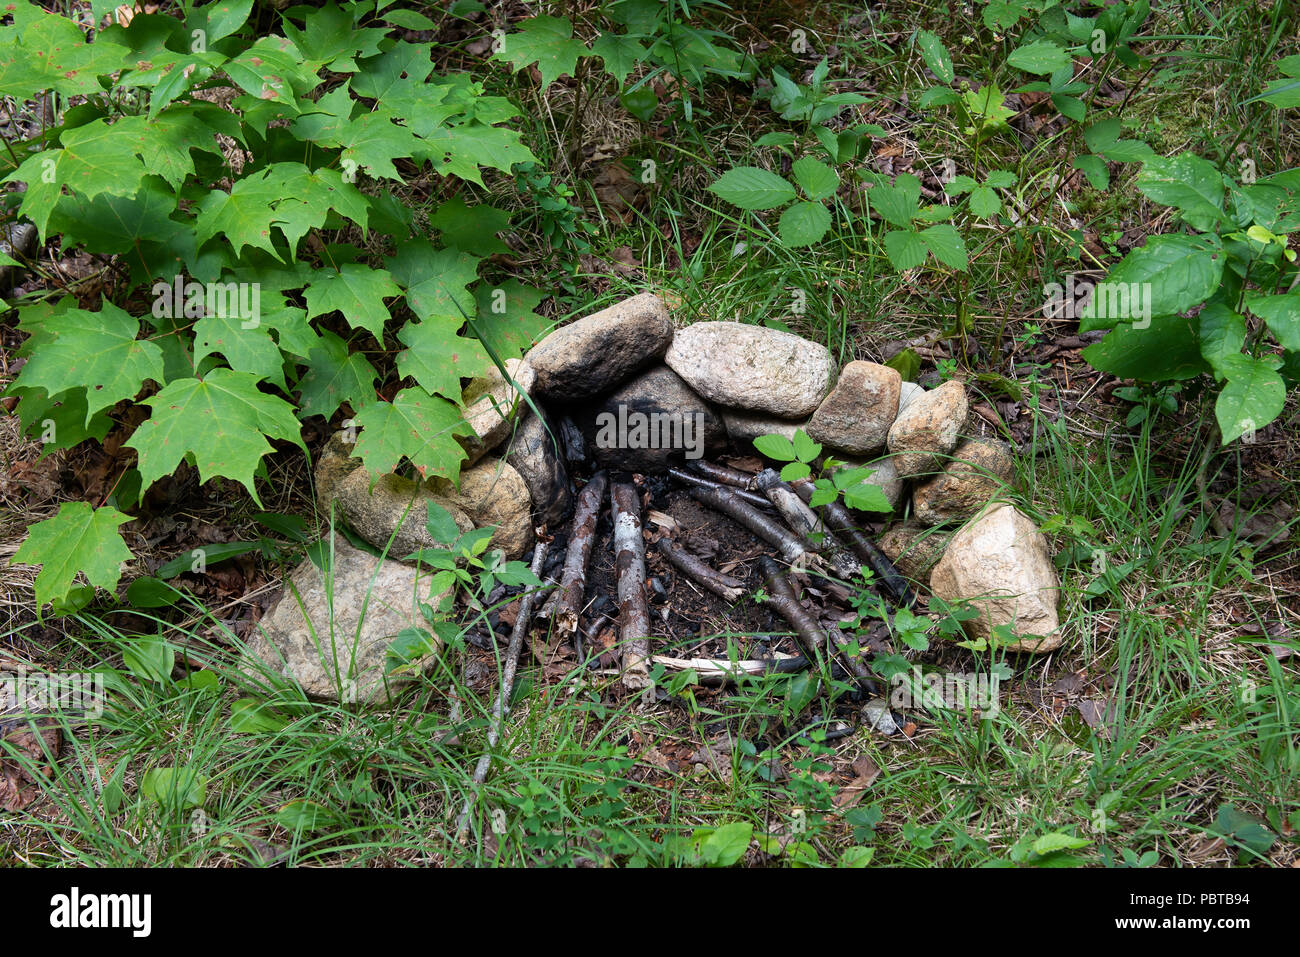 A small primitive rock fire place along a trail in the Adirondack forest, NY USA. - Stock Image